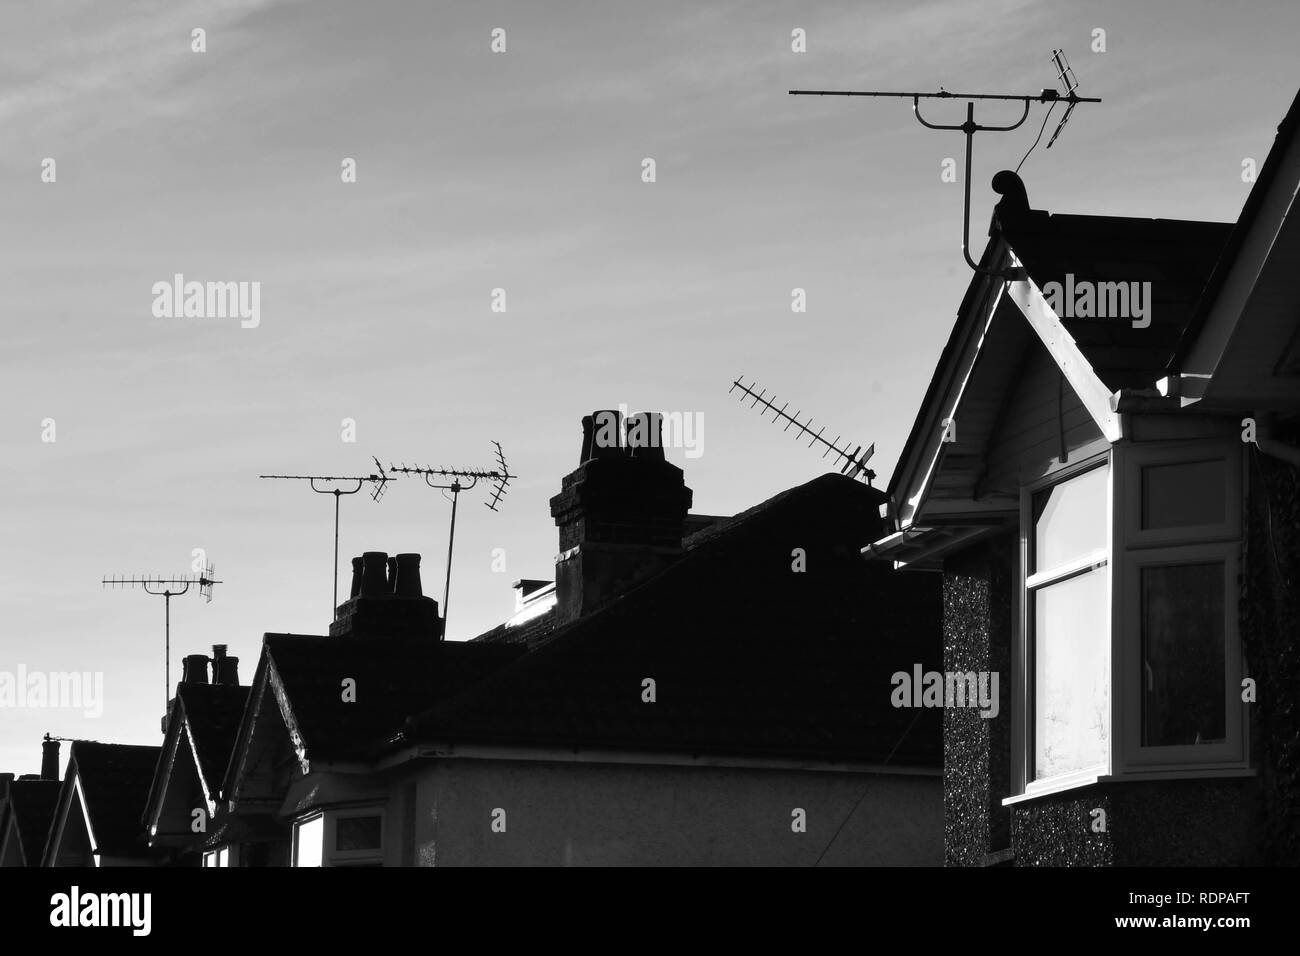 The rooftops of row houses in Southampton, England - Stock Image